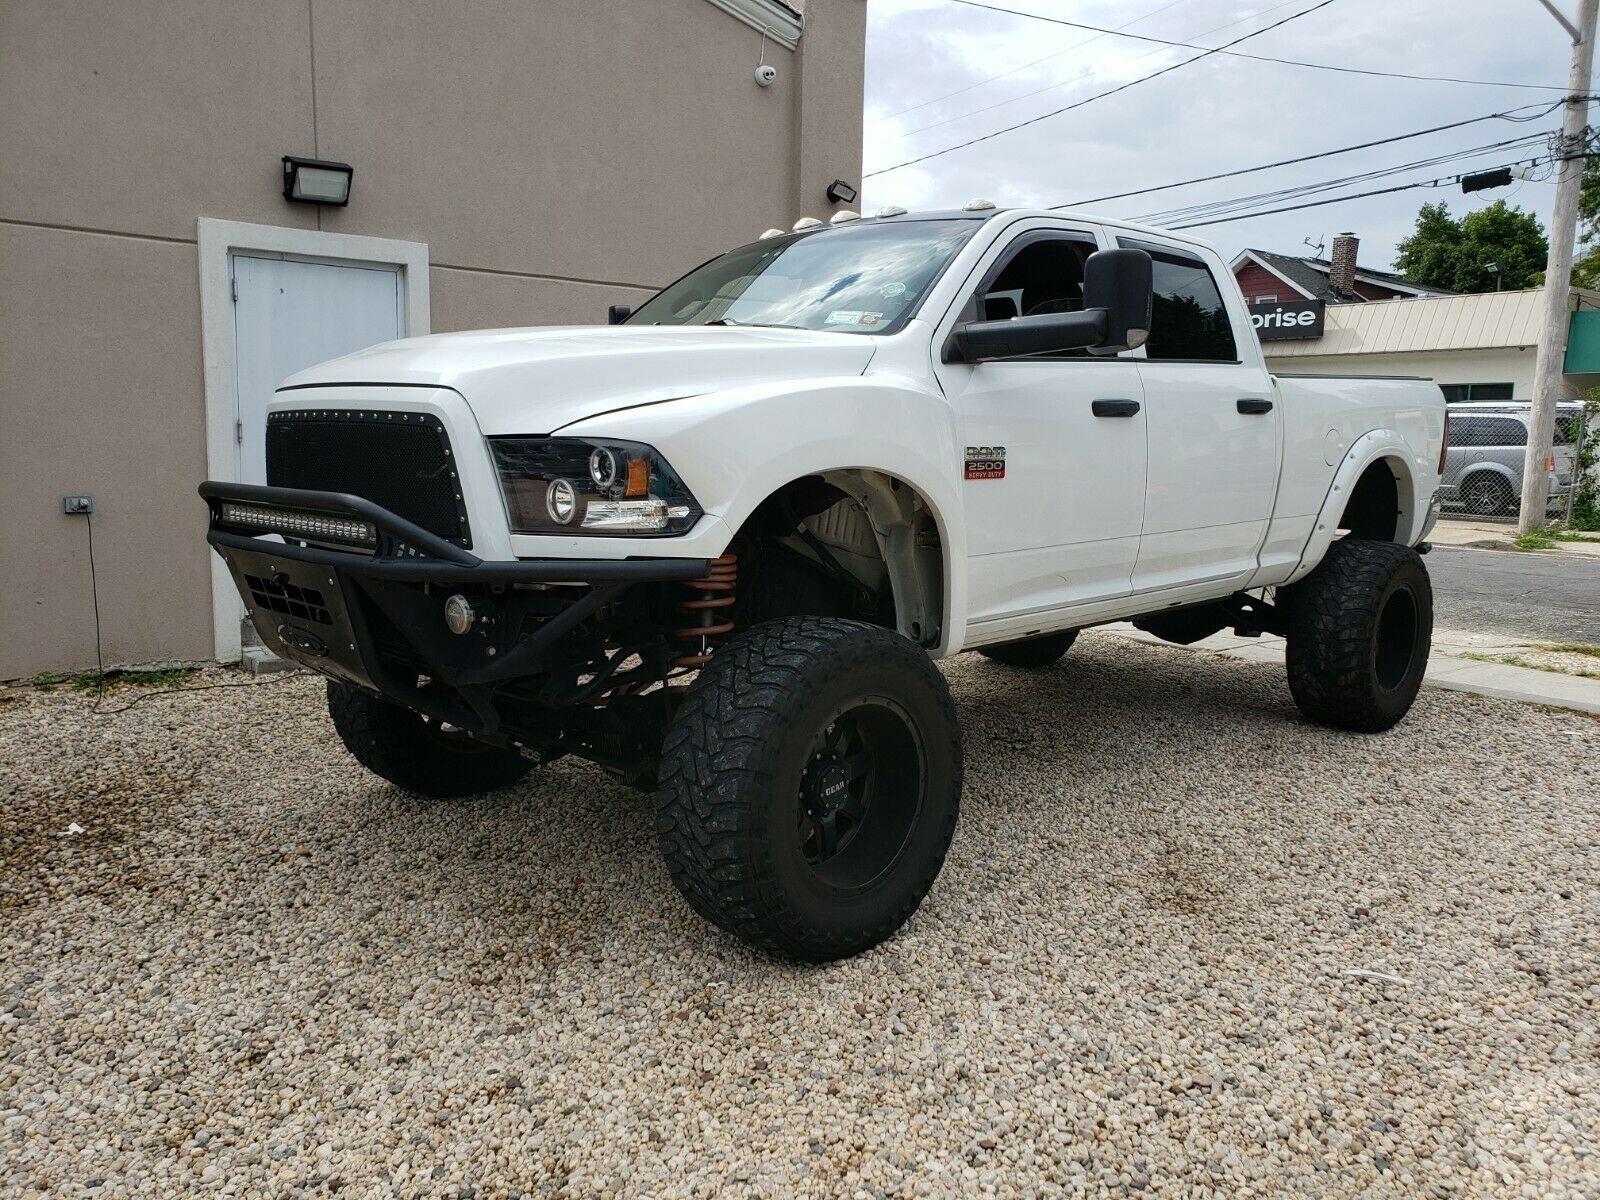 upgraded 2012 Dodge Ram 2500 lifted